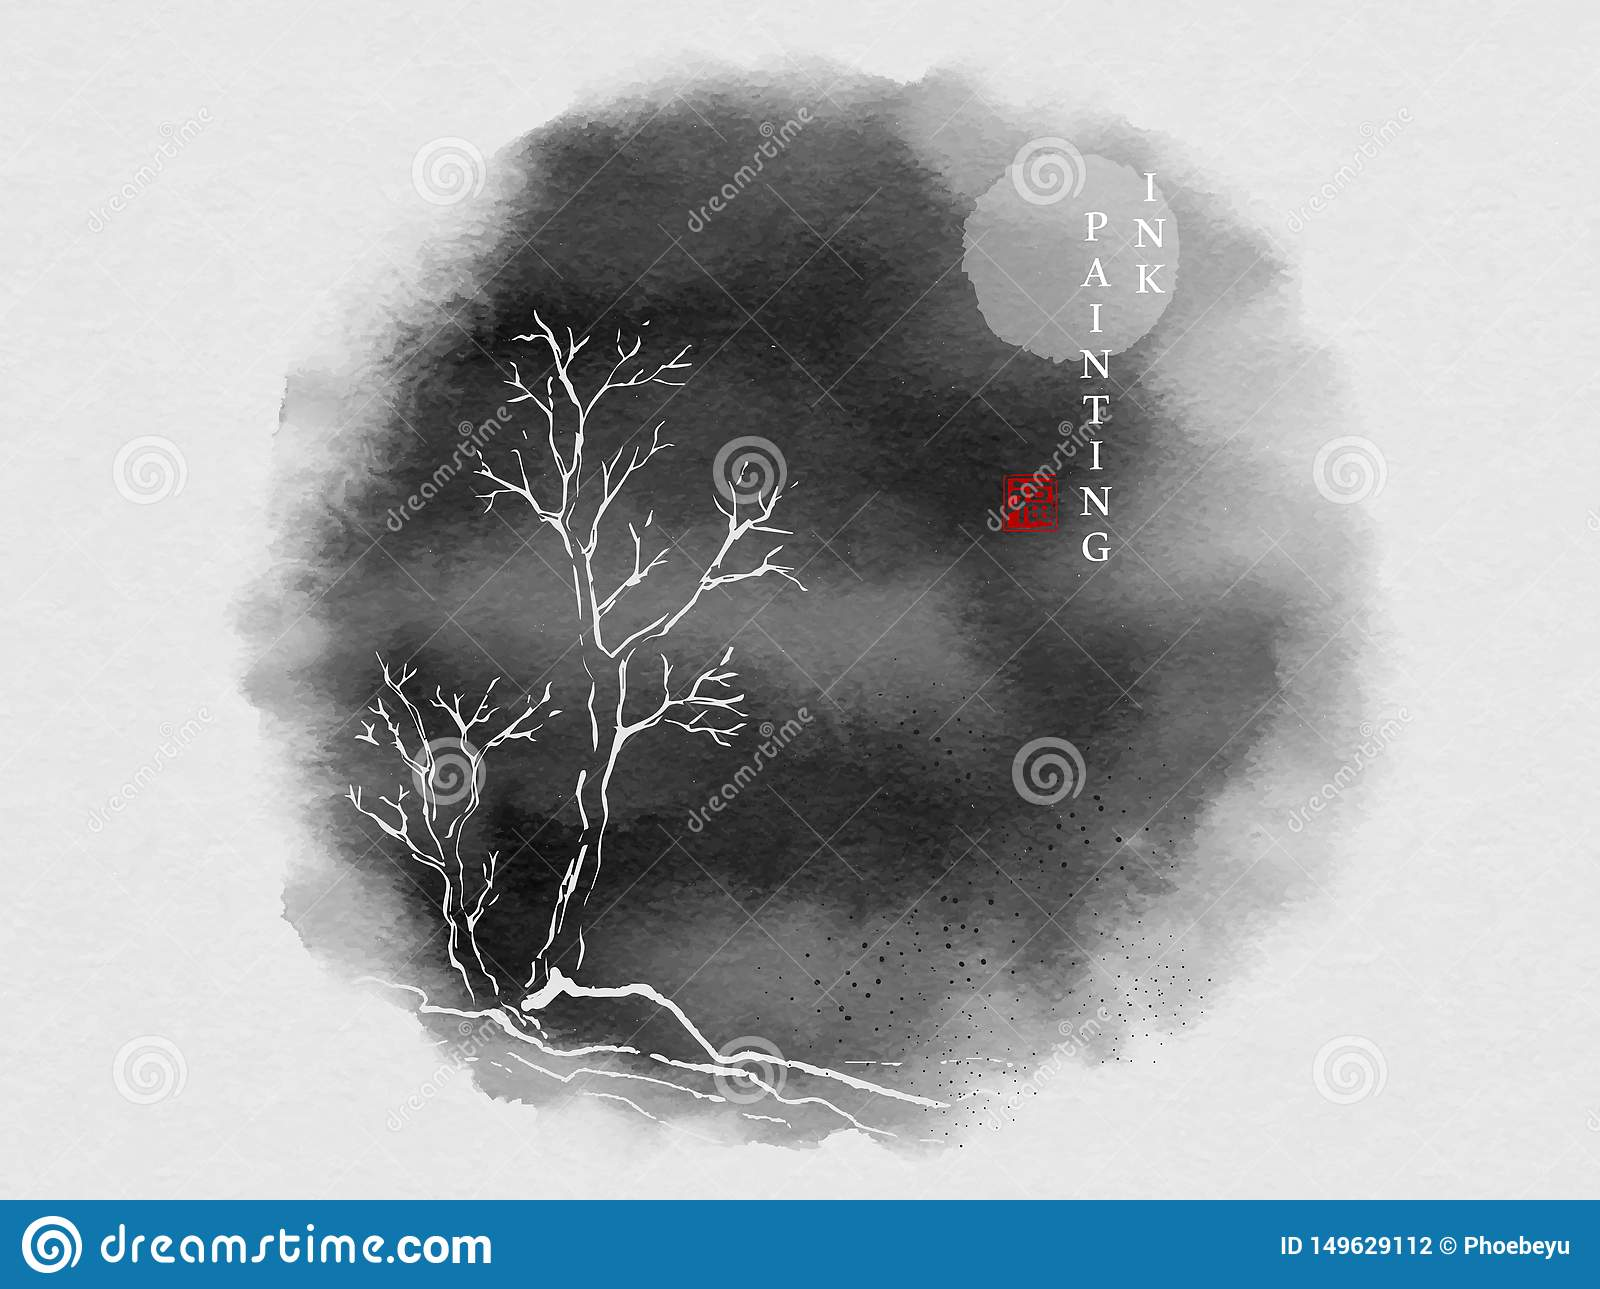 669 Moon Word Photos Free Royalty Free Stock Photos From Dreamstime